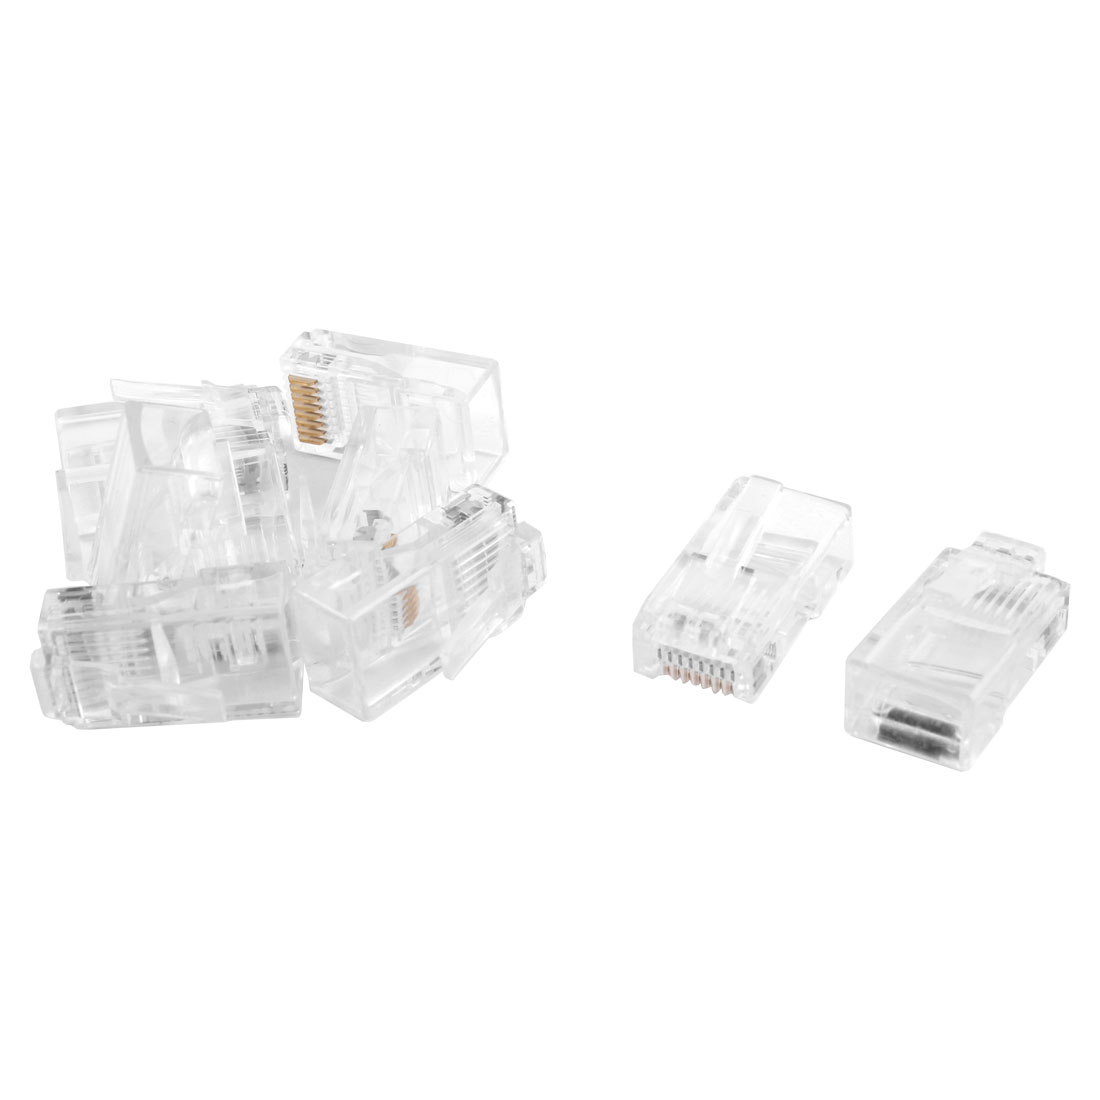 RJ45 8P8C CAT5 Modular Adapter Ethernet Jack LAN Network Connector Clear 9pcs